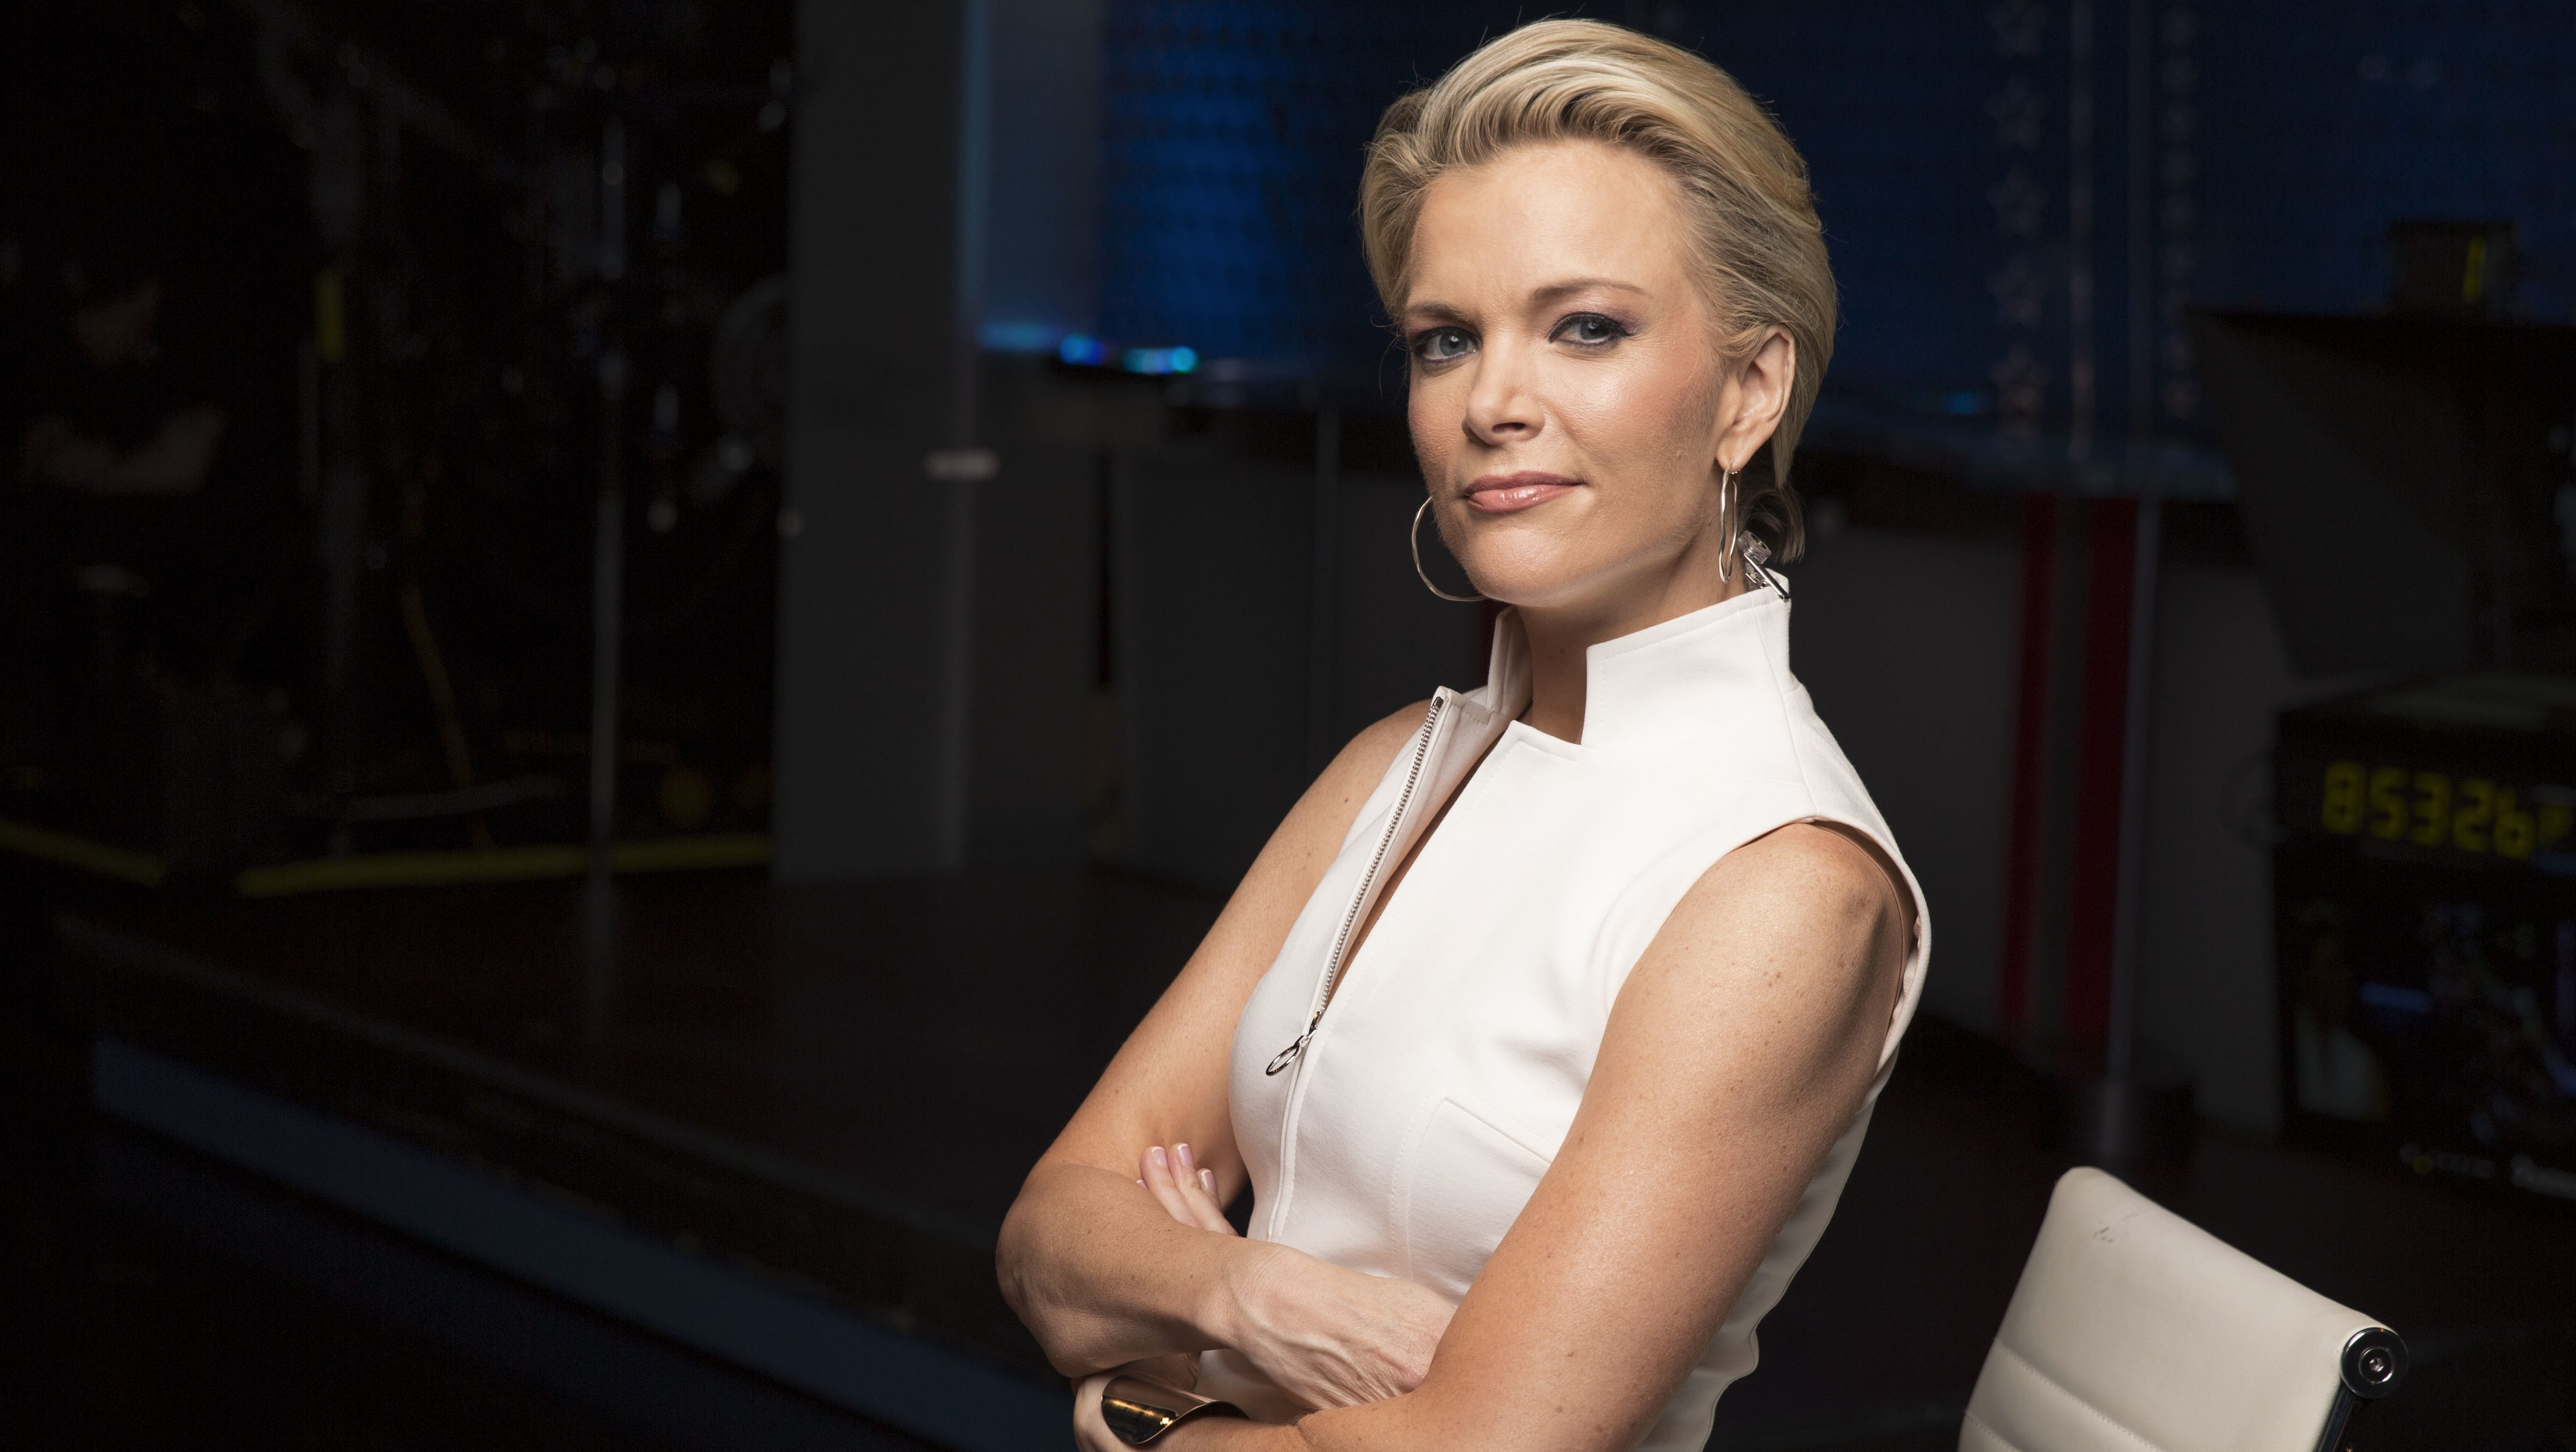 """In this May 5, 2016 file photo, Megyn Kelly poses for a portrait in New York. Kelly is calling on President-elect Donald Trump's social media director to stop encouraging hostile elements among some of his supporters. London-based newspaper, The Guardian, reports that the Fox News anchor told an audience at a speaking event in Washington Monday, Dec. 5, 2016, that there's a small group of Trump supporters """"that really enjoys nastiness and threats."""" She said Dan Scavino's job during the campaign was """"to stir these people up and that man needs to stop doing that."""""""